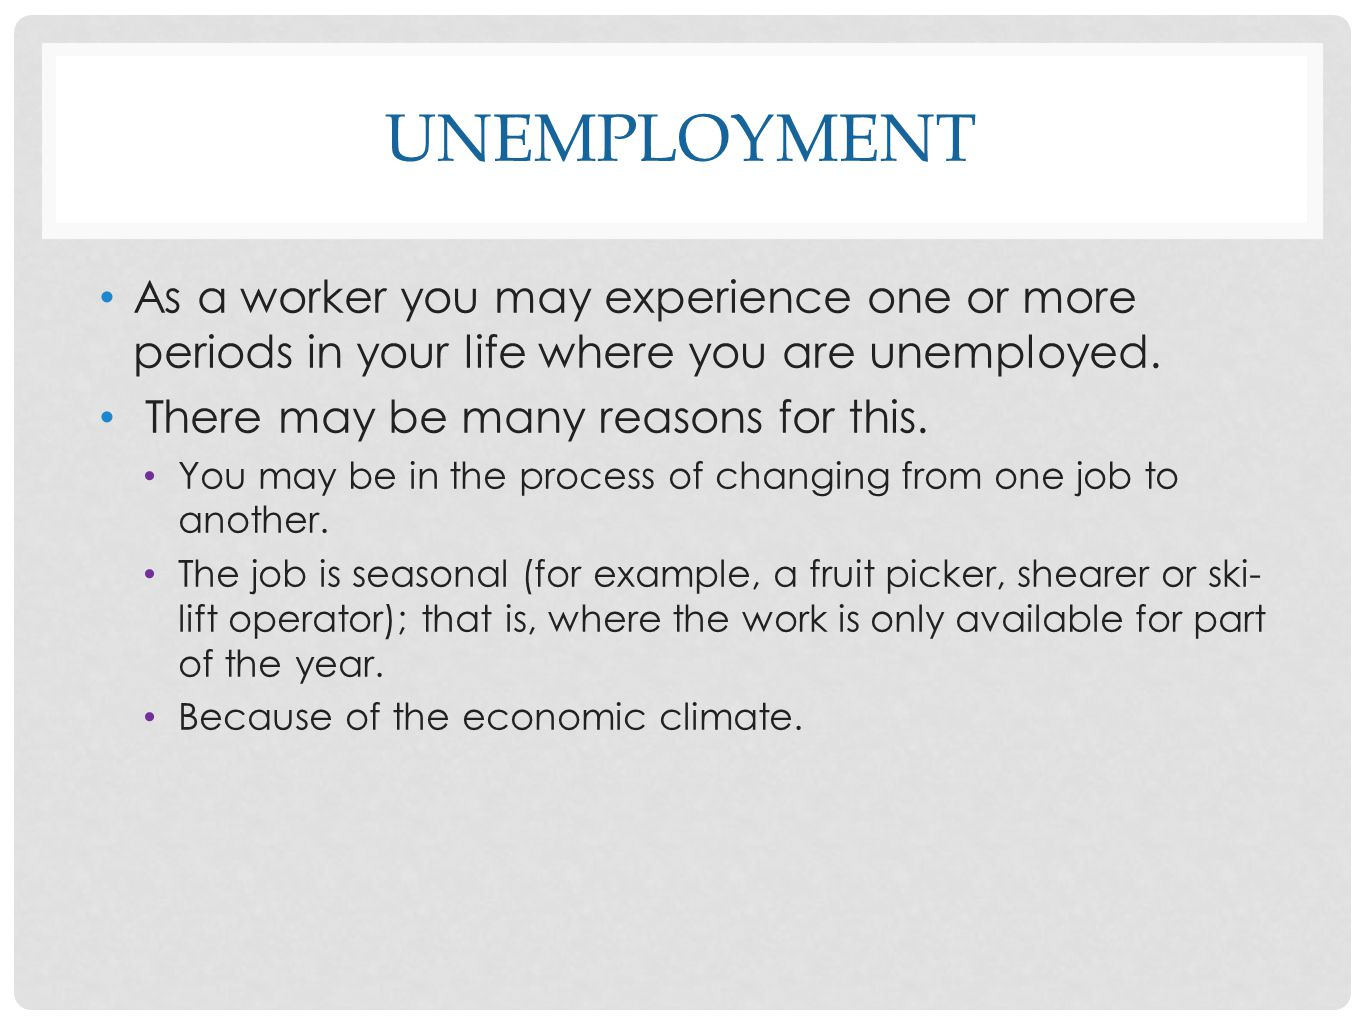 unemployment As a worker you may experience one or more periods in your life where you are unemployed.